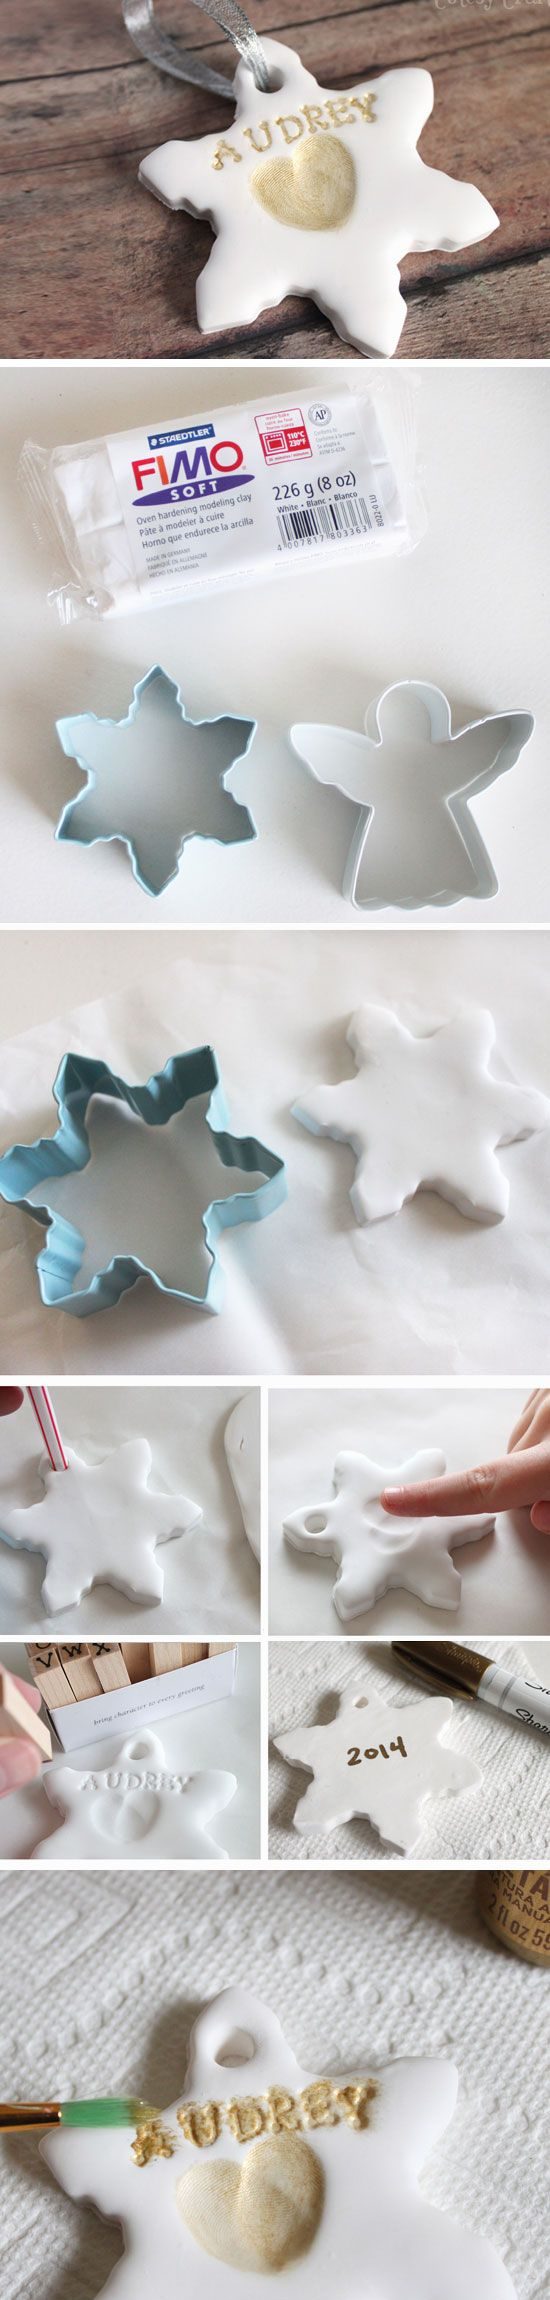 Fingerprint Snowflakes | Click Pic for 23 DIY Christmas Ornaments for Kids to Make | DIY Christmas Crafts for Kids to Make